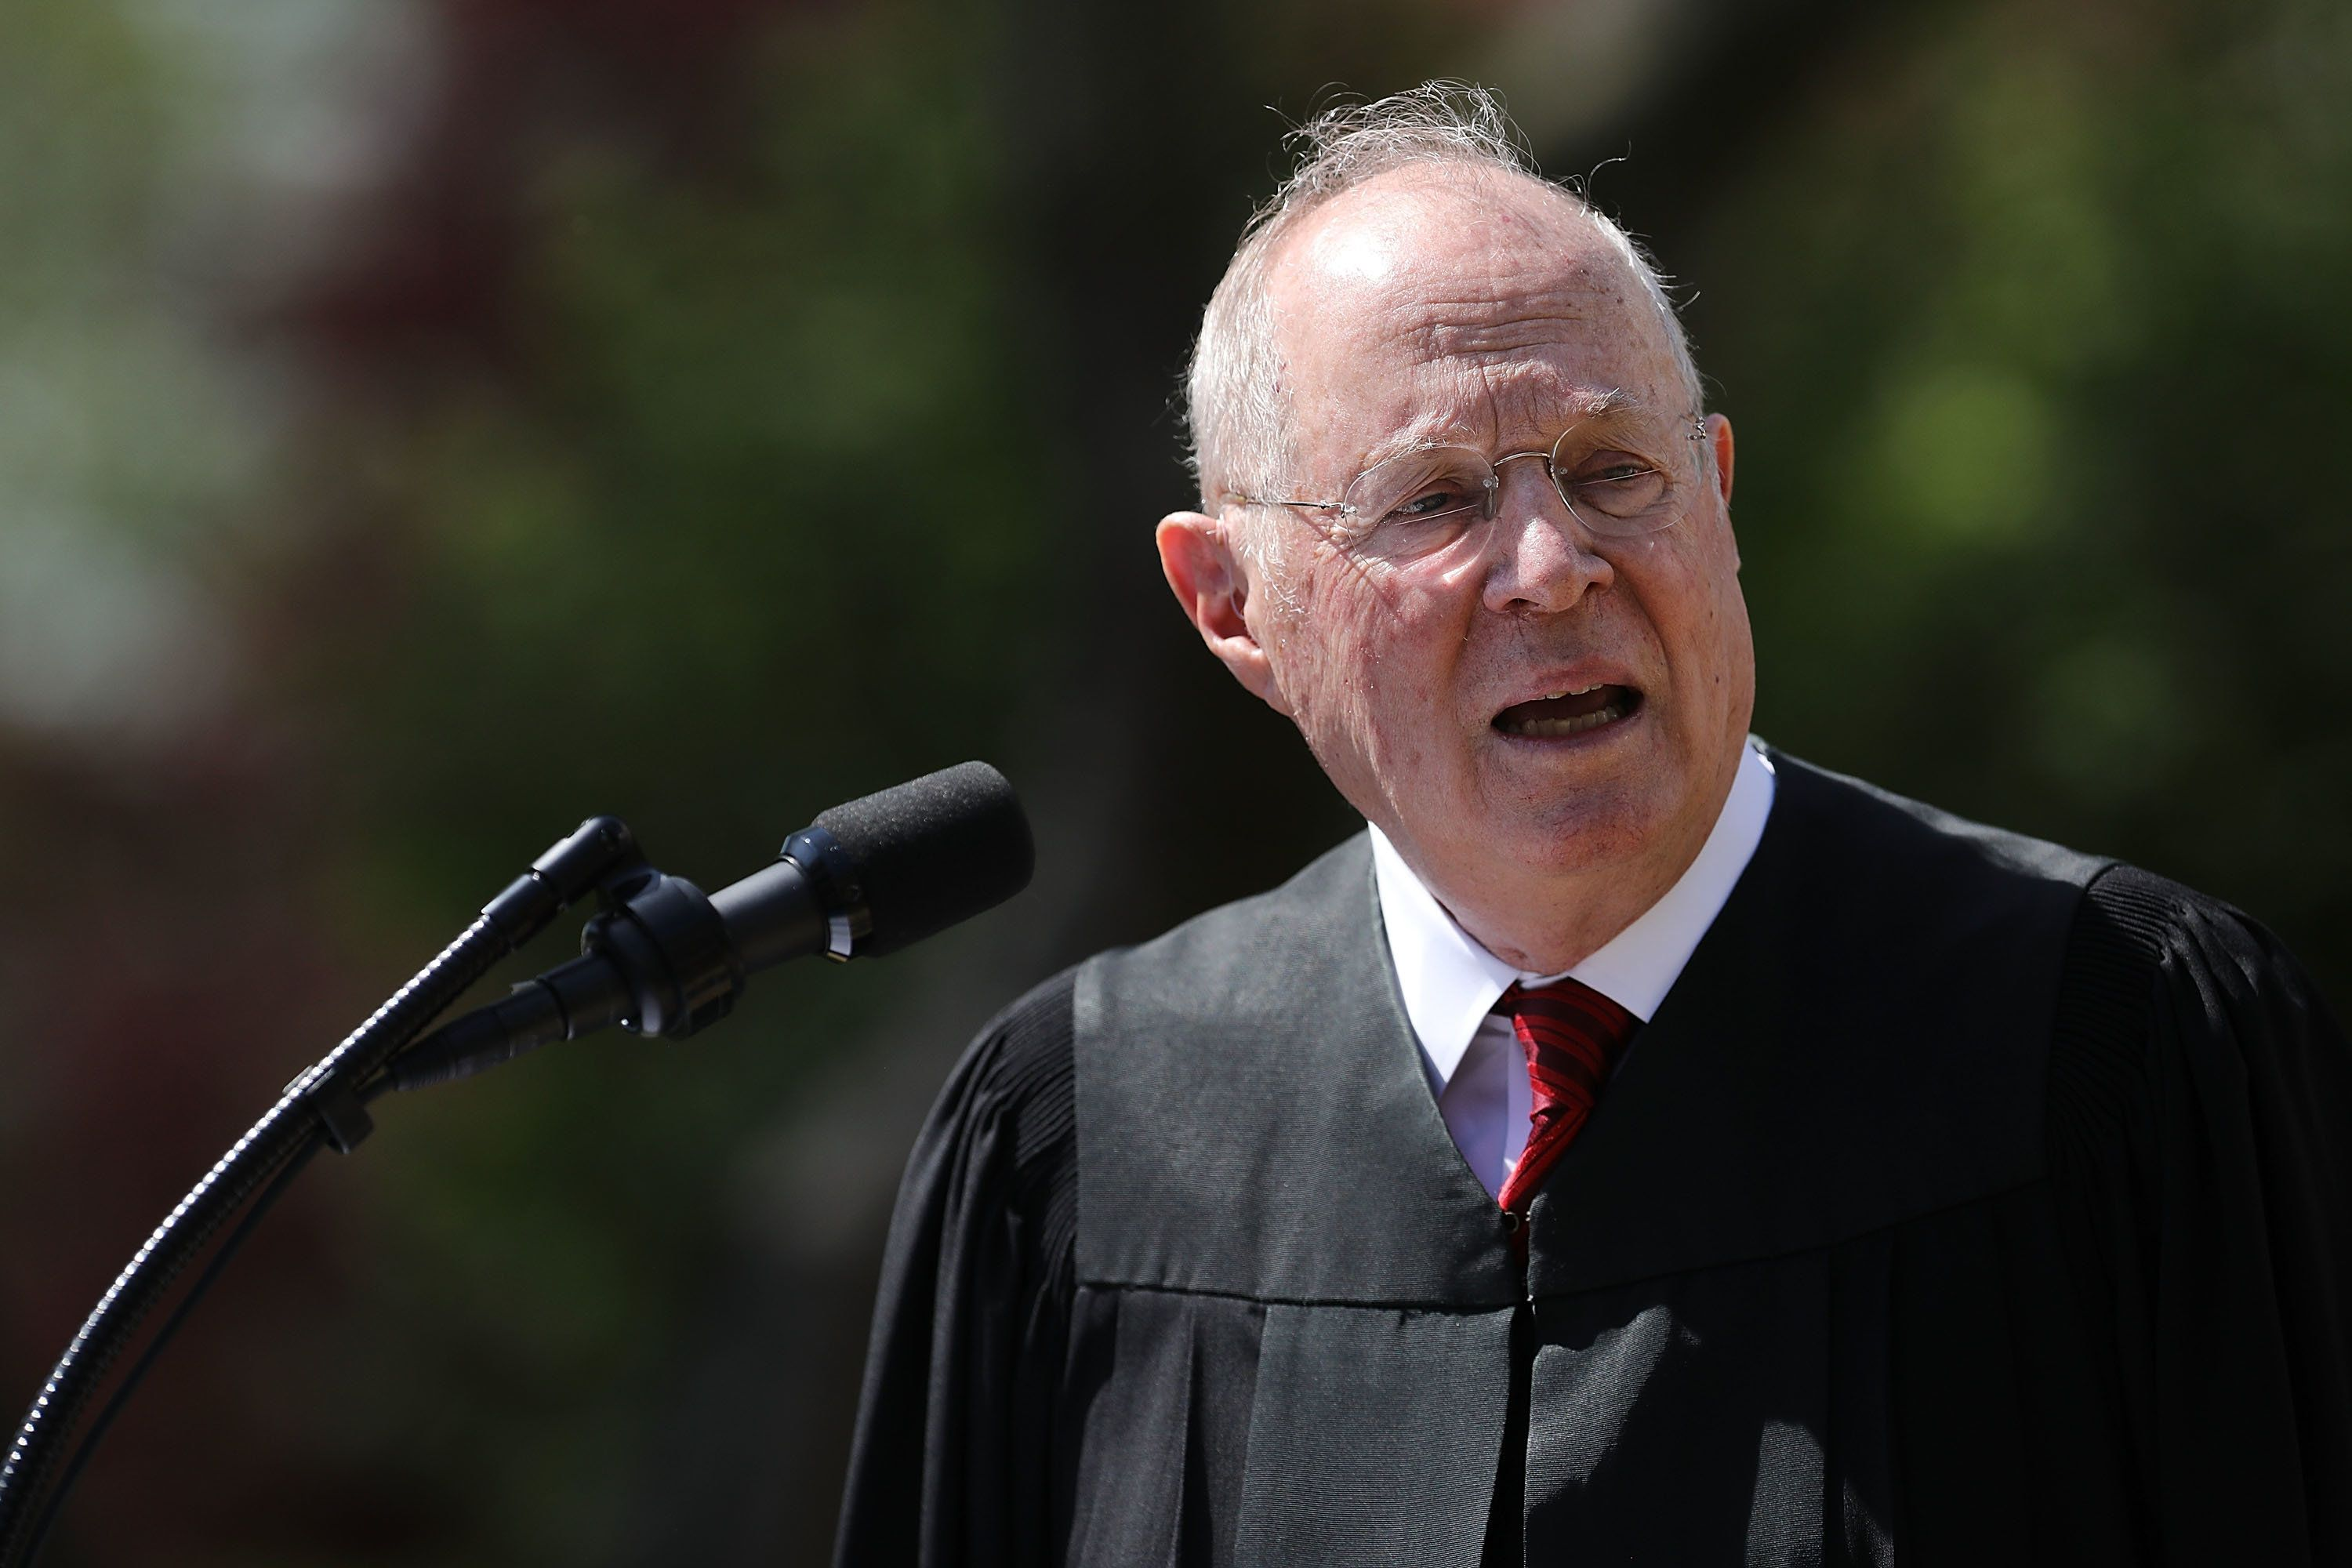 WASHINGTON, DC - APRIL 10:  U.S. Supreme Court Associate Justice Anthony Kennedy delivers remarks before administering the judicial oath to Judge Neil Gorsuch during a ceremony in the Rose Garden at the White House April 10, 2017 in Washington, DC. Earlier in the day Gorsuch, 49, was sworn in as the 113th Associate Justice in a private ceremony at the Supreme Court.  (Photo by Chip Somodevilla/Getty Images)